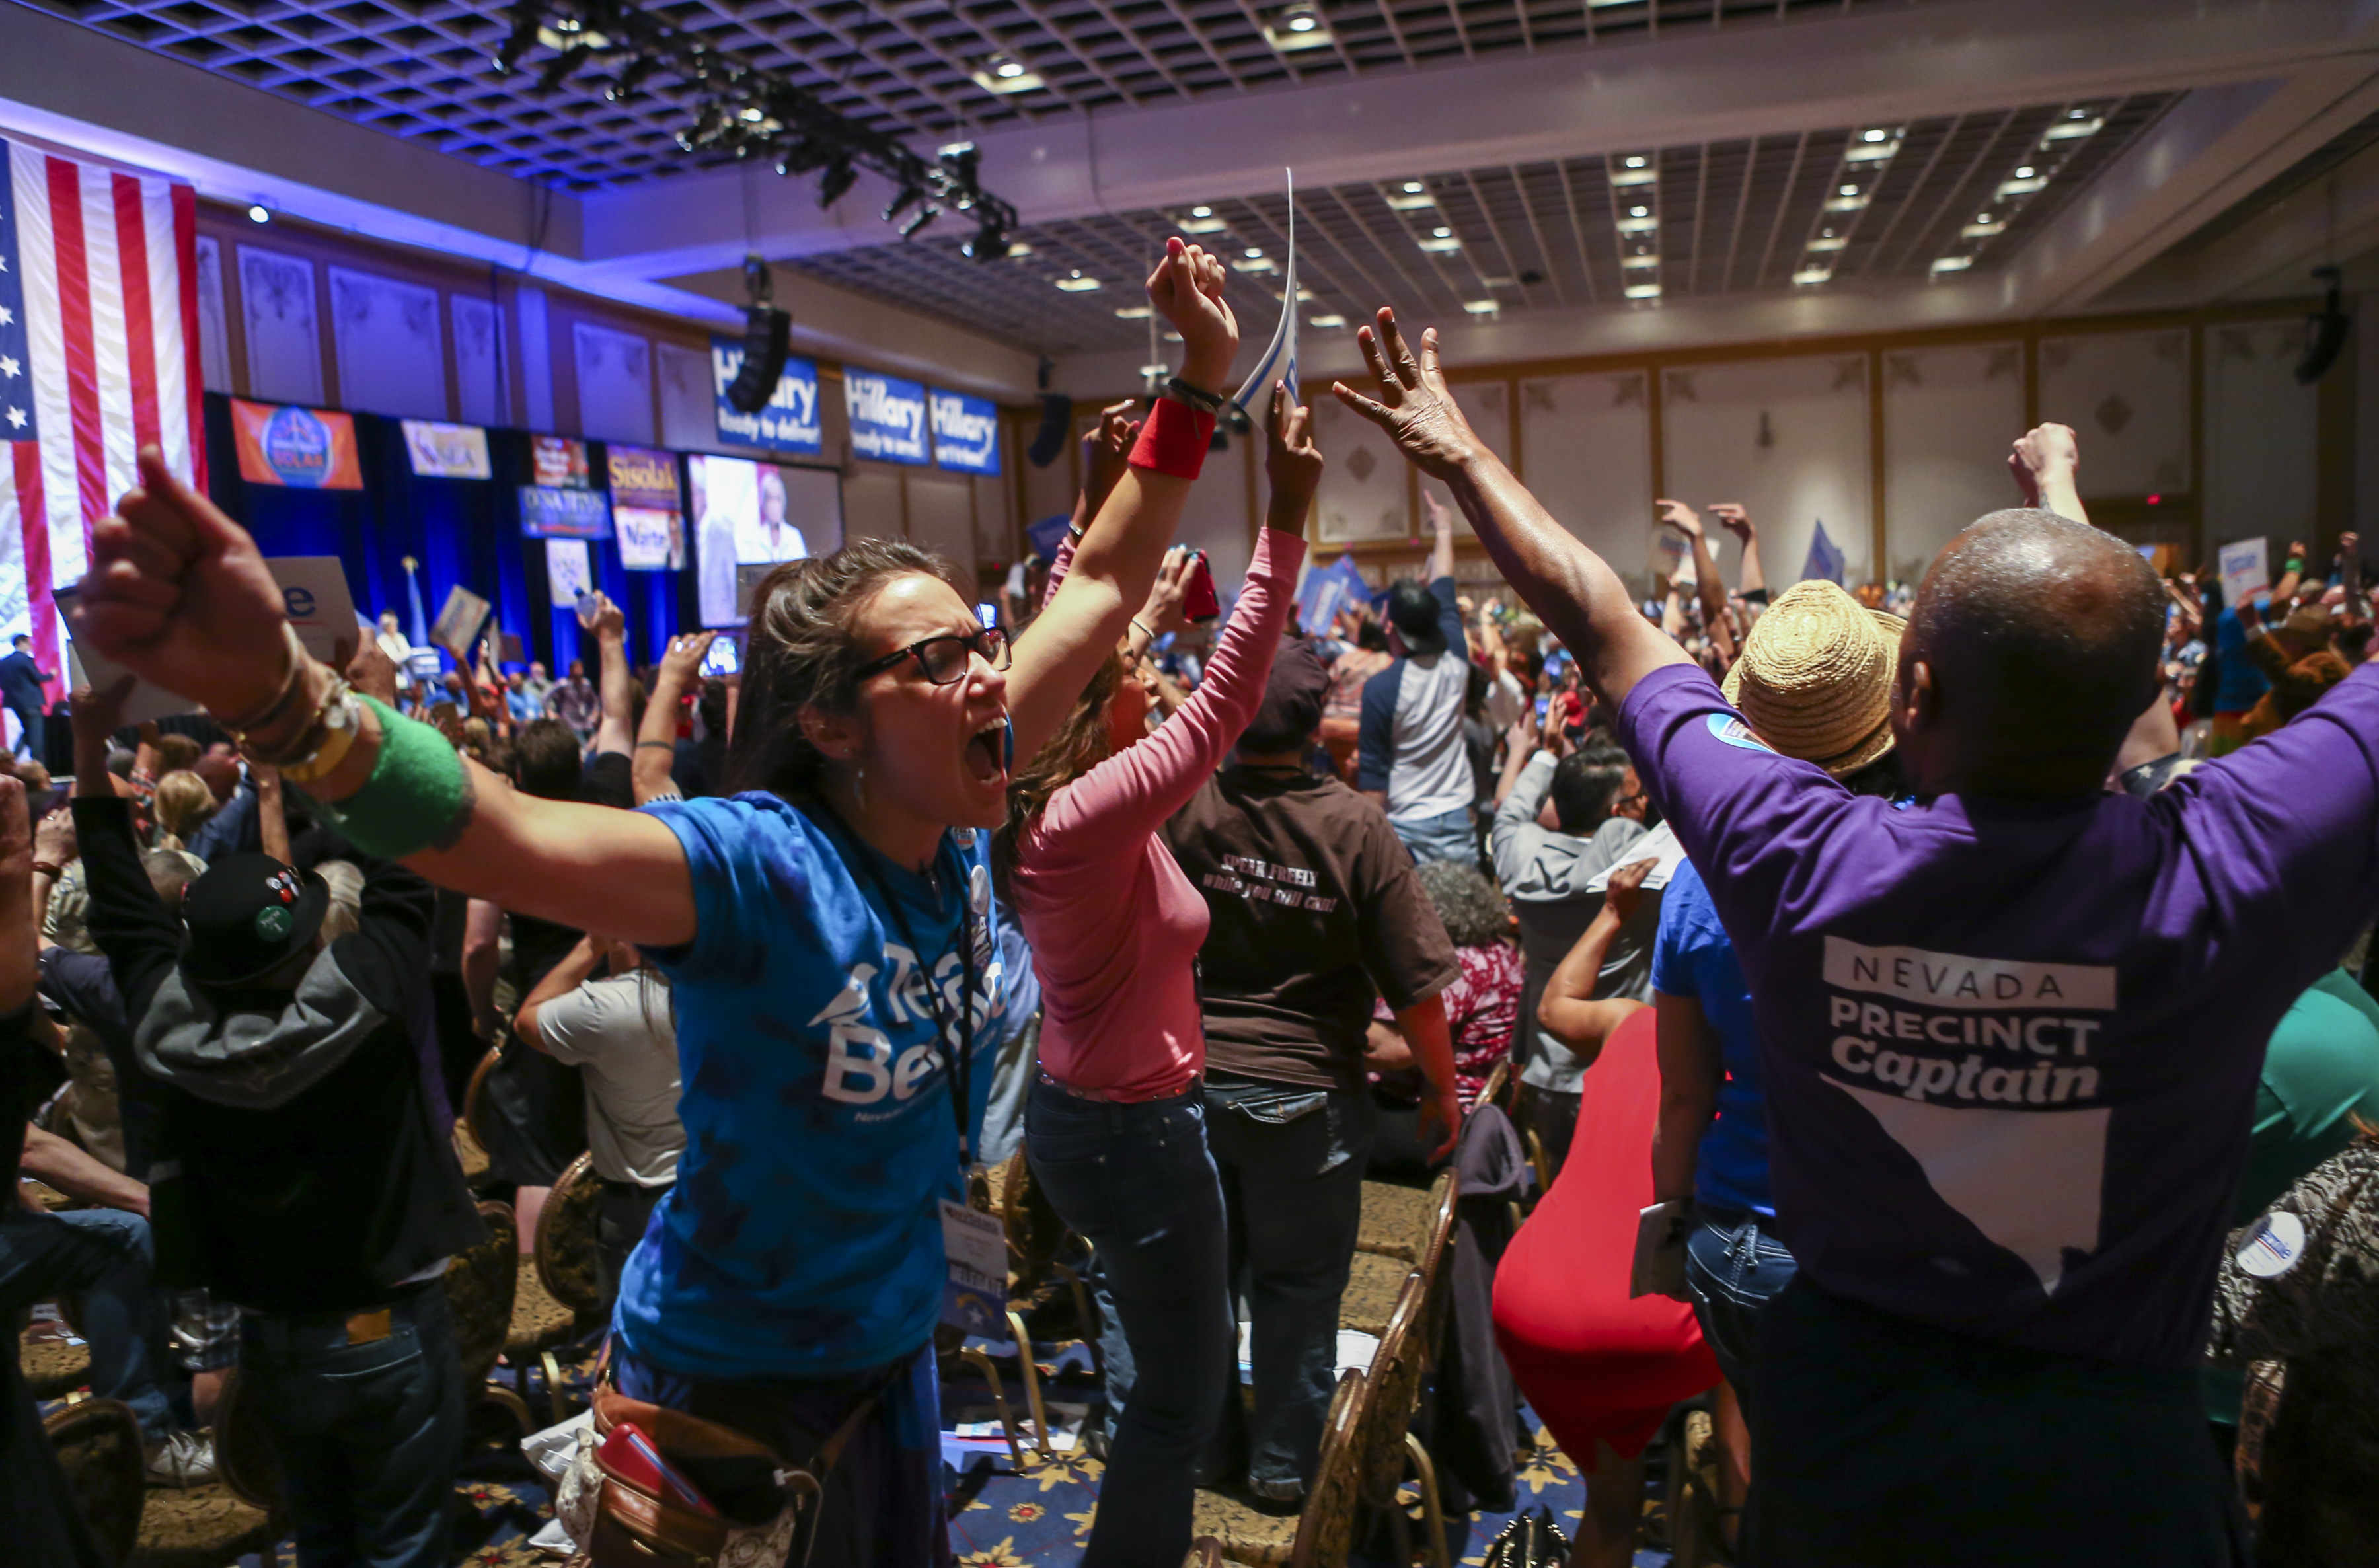 In a Saturday, May 14, 2016 photo, supporters of Democratic presidential candidate Bernie Sanders react during the Nevada State Democratic Party's 2016 State Convention at the Paris hotel-casino in Las Vegas. The Nevada Democratic Convention turned into an unruly and unpredictable event, after tension with organizers led to some Bernie Sanders supporters throwing chairs and to security clearing the room, organizers said. (Chase Stevens/Las Vegas Review-Journal via AP) LOCAL TELEVISION OUT; LOCAL INTERNET OUT; LAS VEGAS SUN OUT